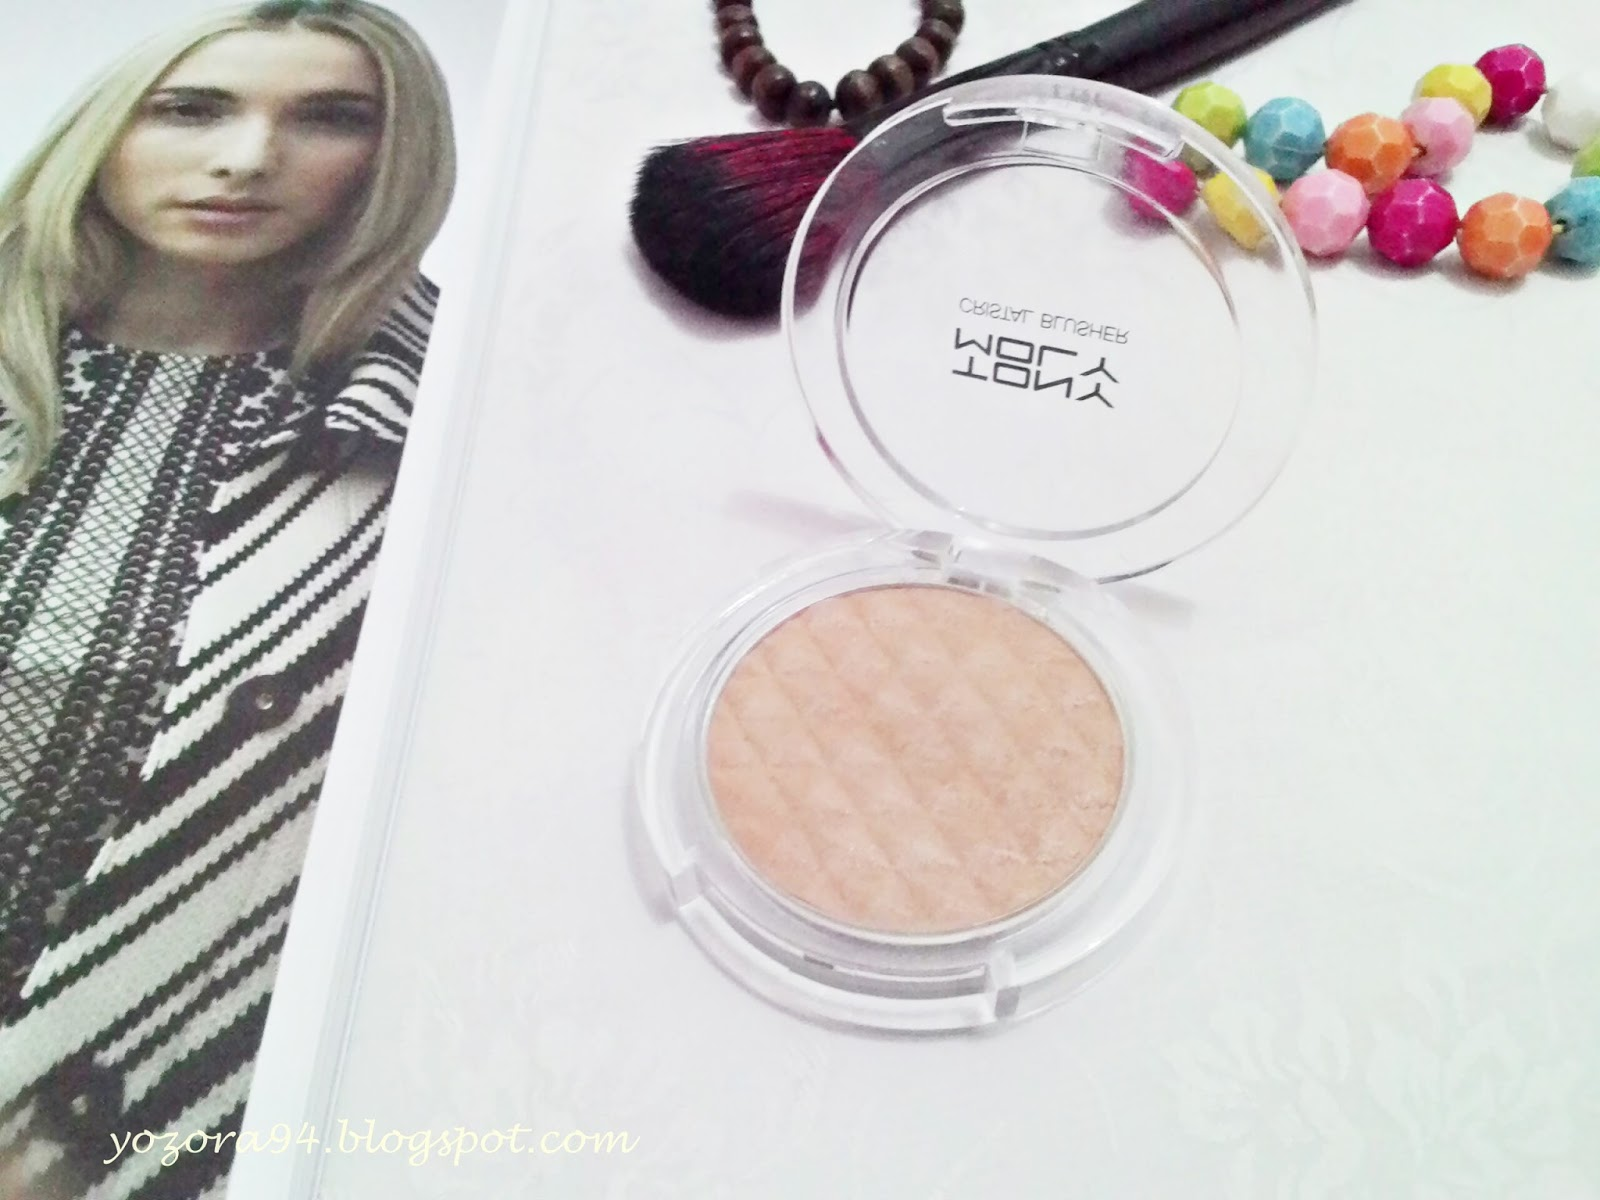 Review tony moly crystal blusher in sugar brown ells beauty even pony korean makeup artist using this shade often for nose shading at her video tutorial baditri Images